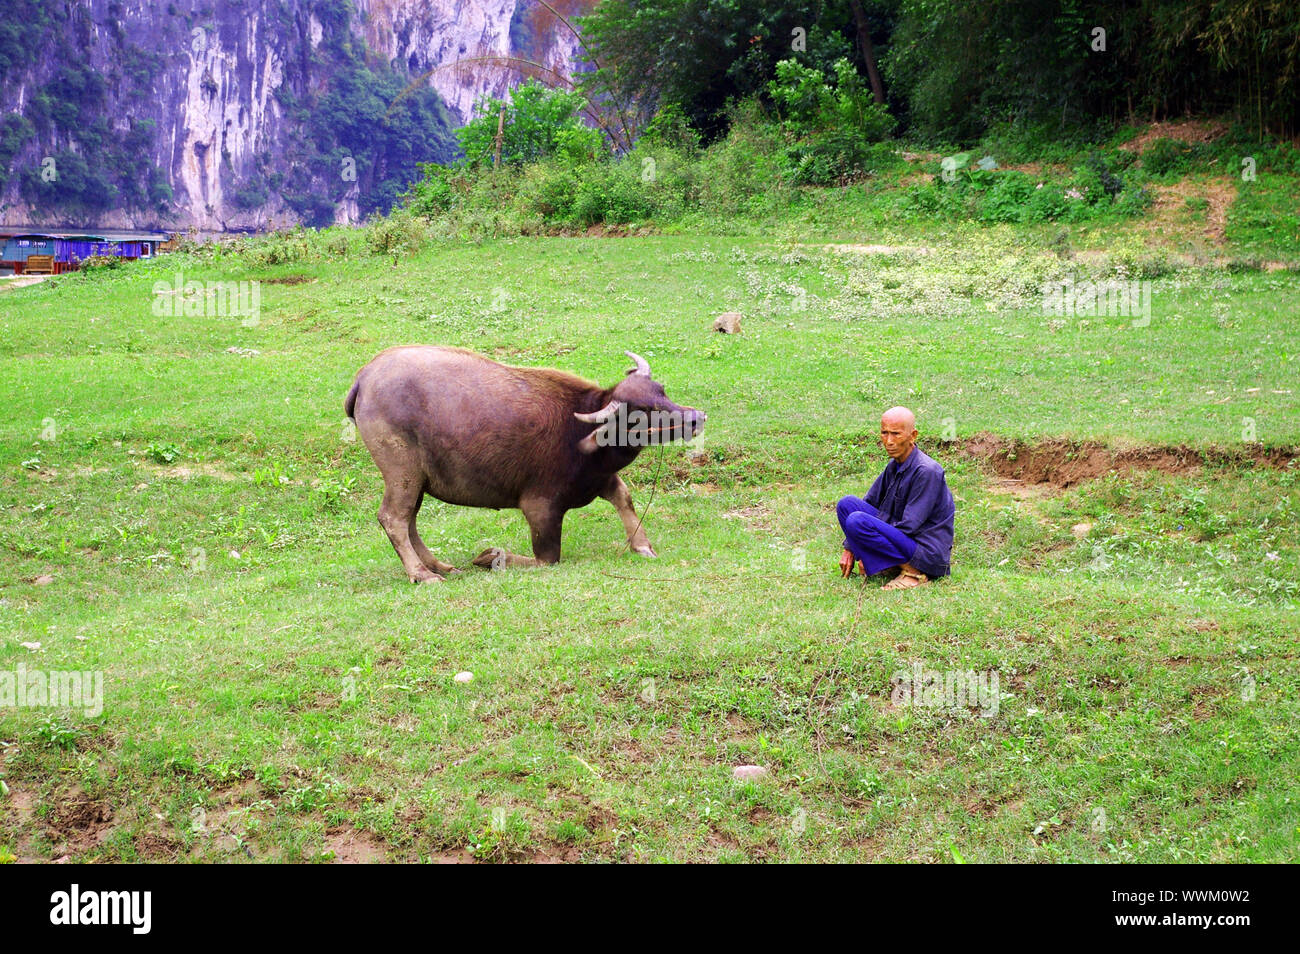 CHINA - MAY 17, He is a traditional farmer with his cow in Yangshuo, China on 17 May, 2010. Stock Photo